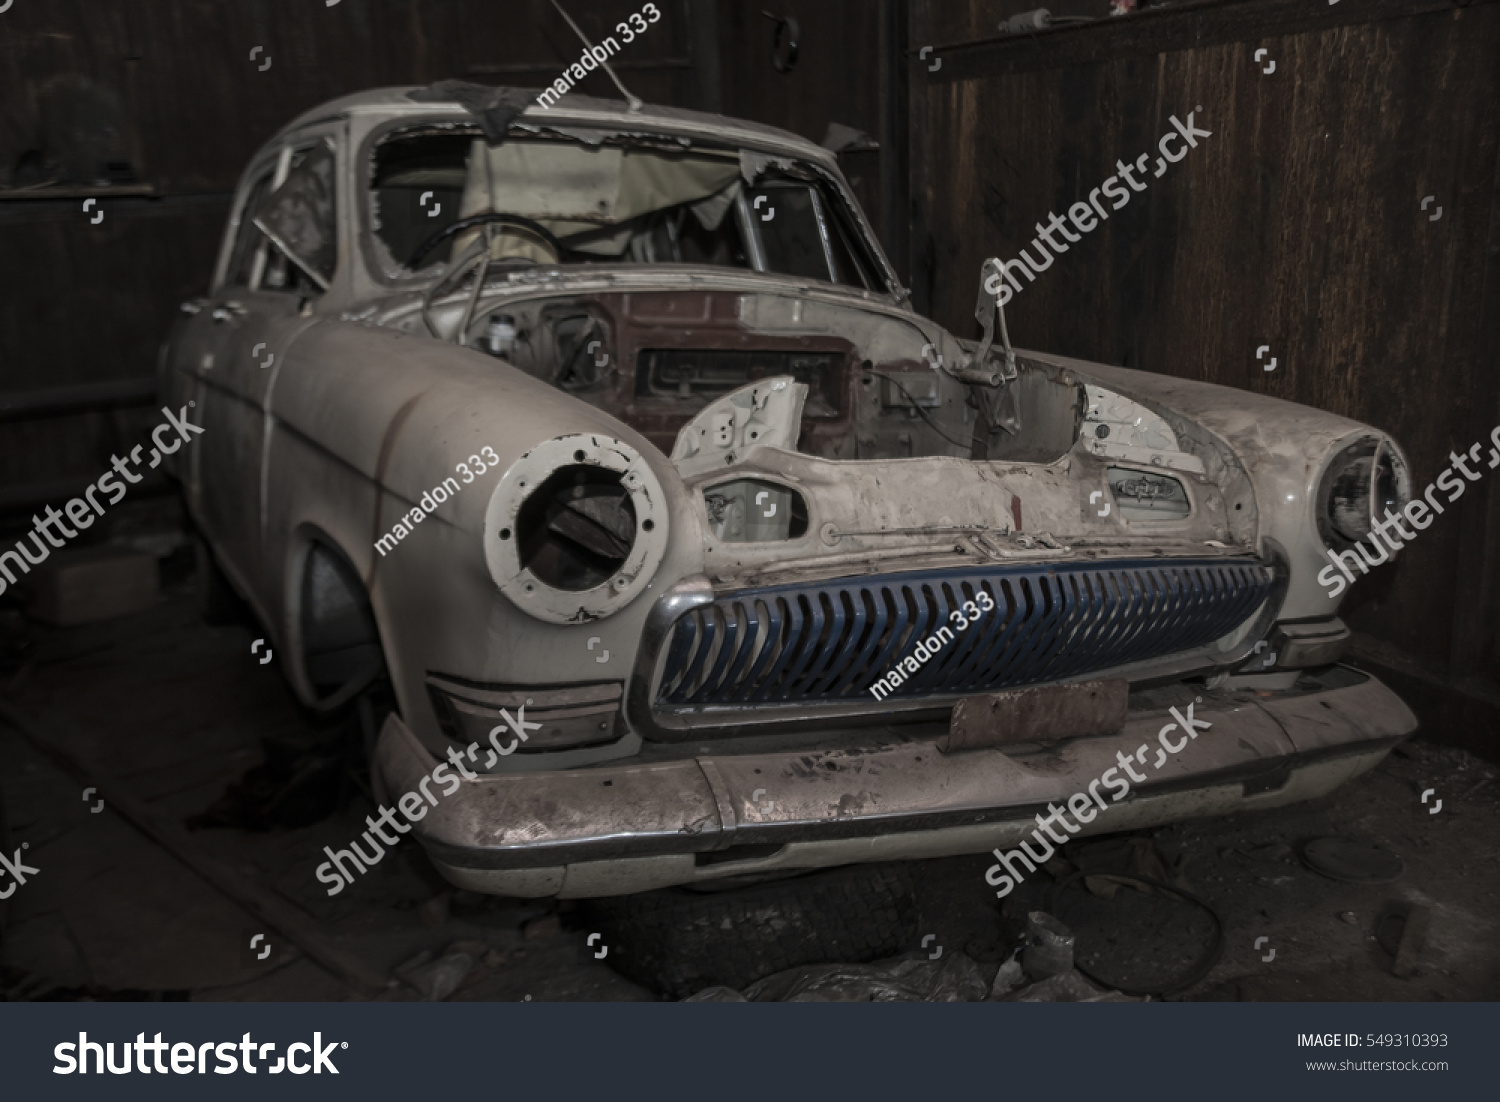 image old rusted weathered scrap exploded stock photo 549310393 shutterstock. Black Bedroom Furniture Sets. Home Design Ideas